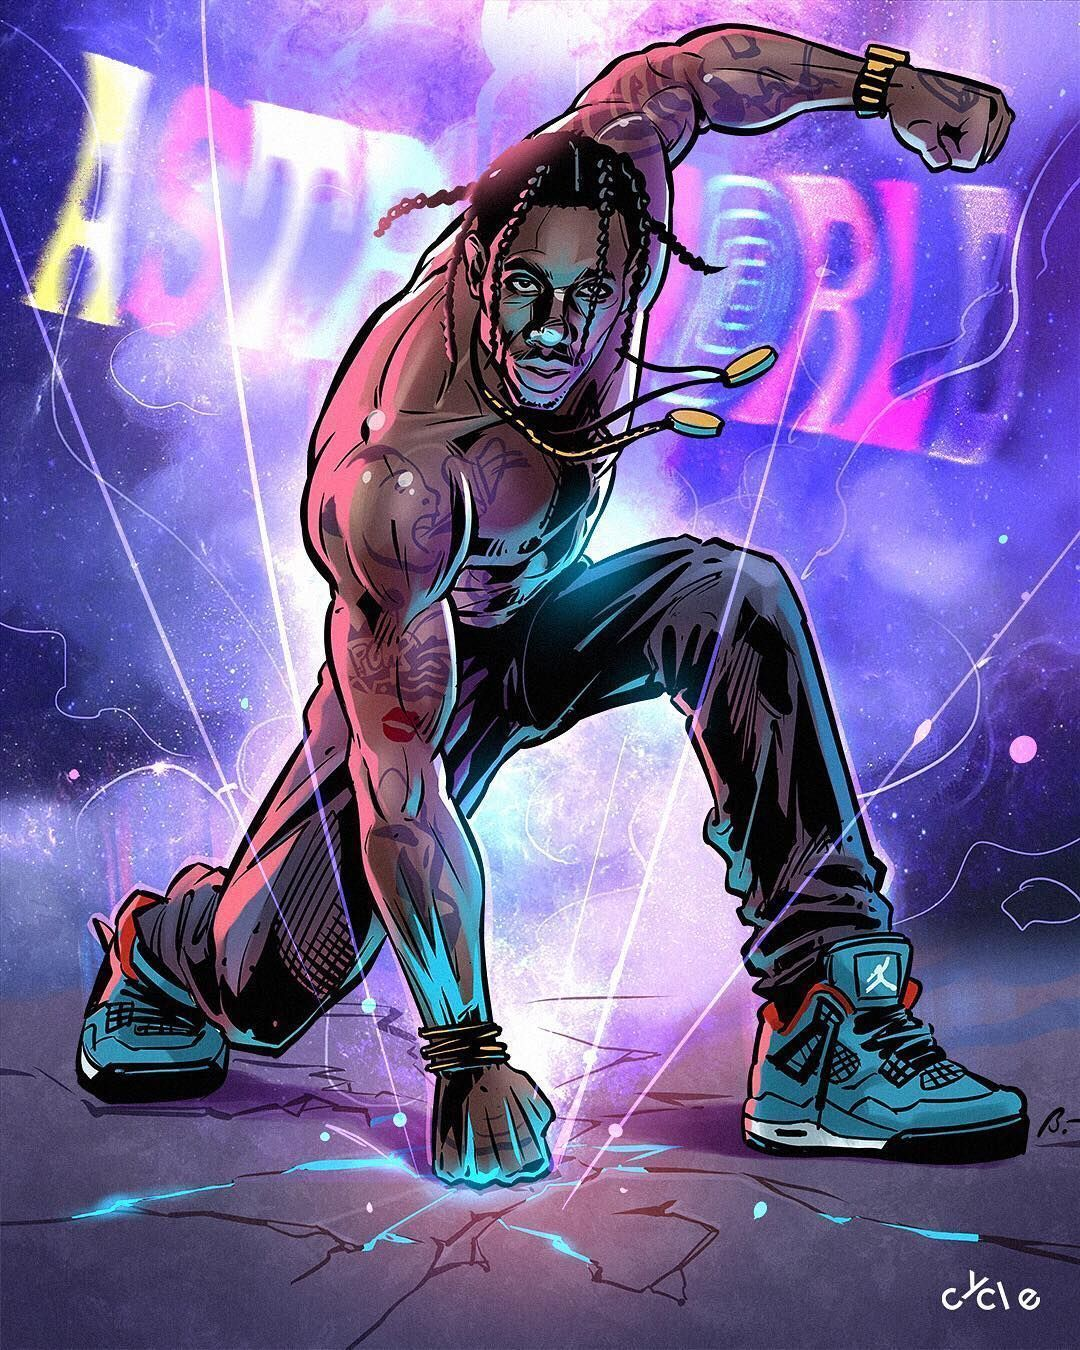 Travis Scott Astroworld Hero Travisscottwallpapers Travis Scott Astroworld Hero Travisscottwal In 2020 Travis Scott Wallpapers Travis Scott Art Travis Scott Tattoo